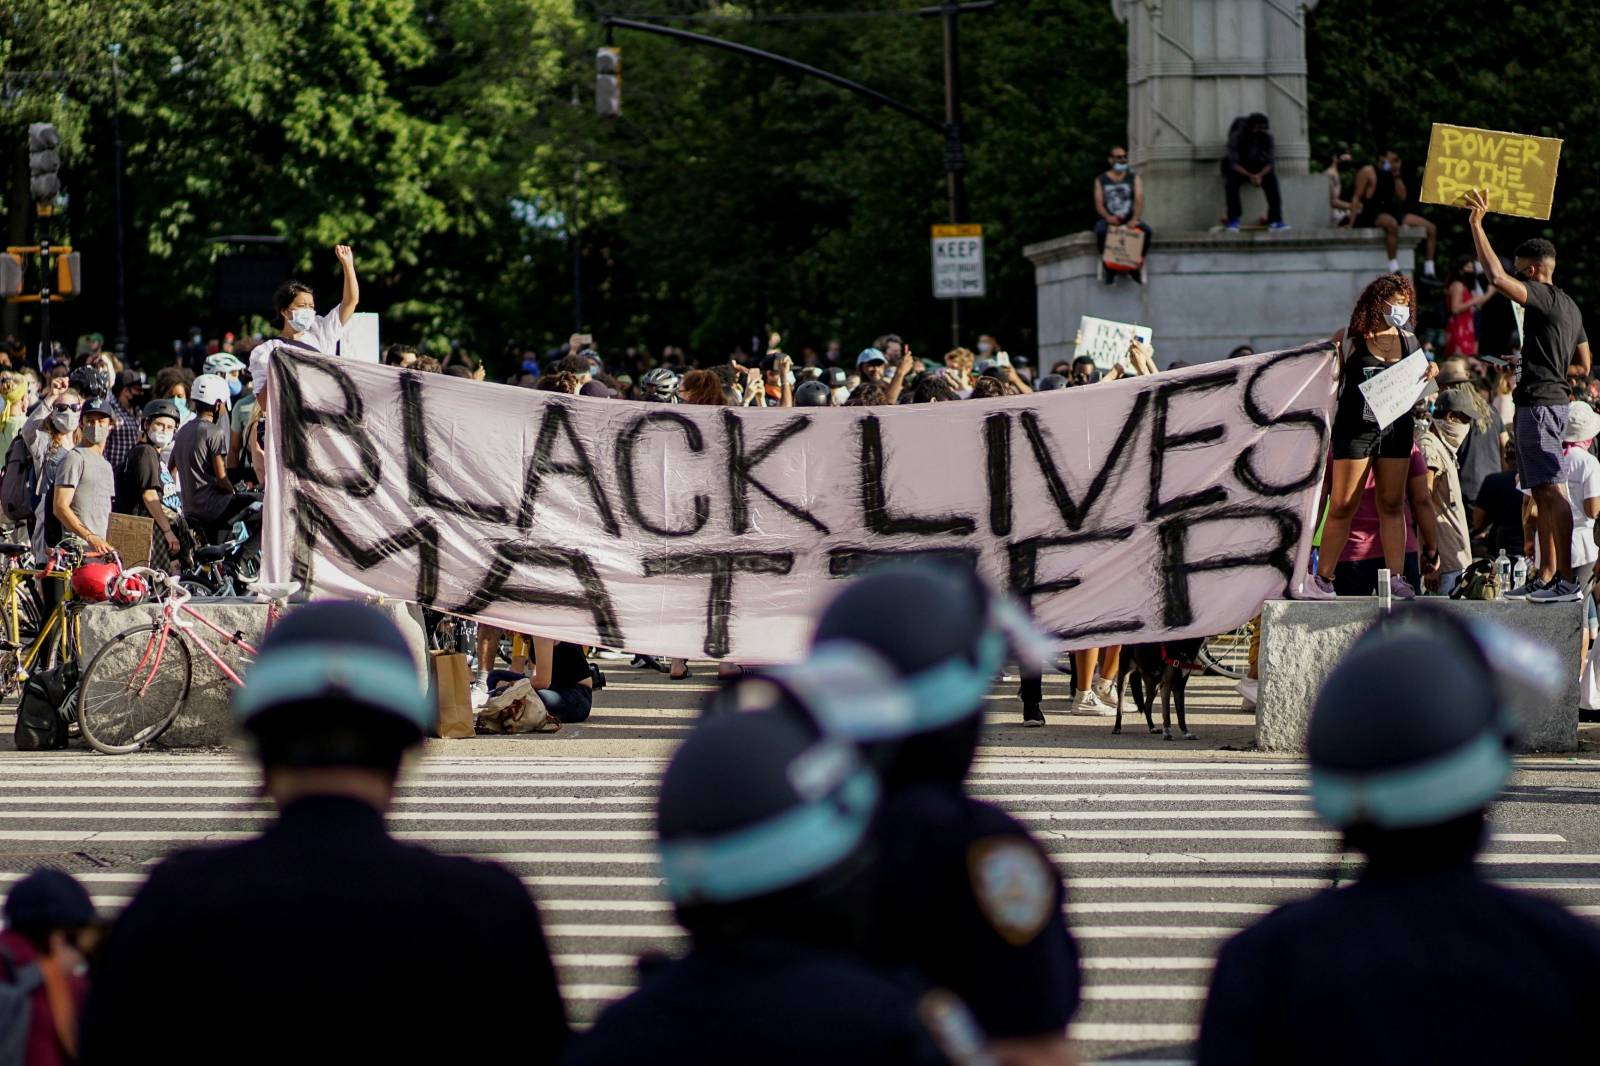 Demonstrators hold a Black Lives Matter banner during a protest against racial inequality in the aftermath of the death in Minneapolis police custody of George Floyd, at Grand Army Plaza in the Brooklyn borough of New York City